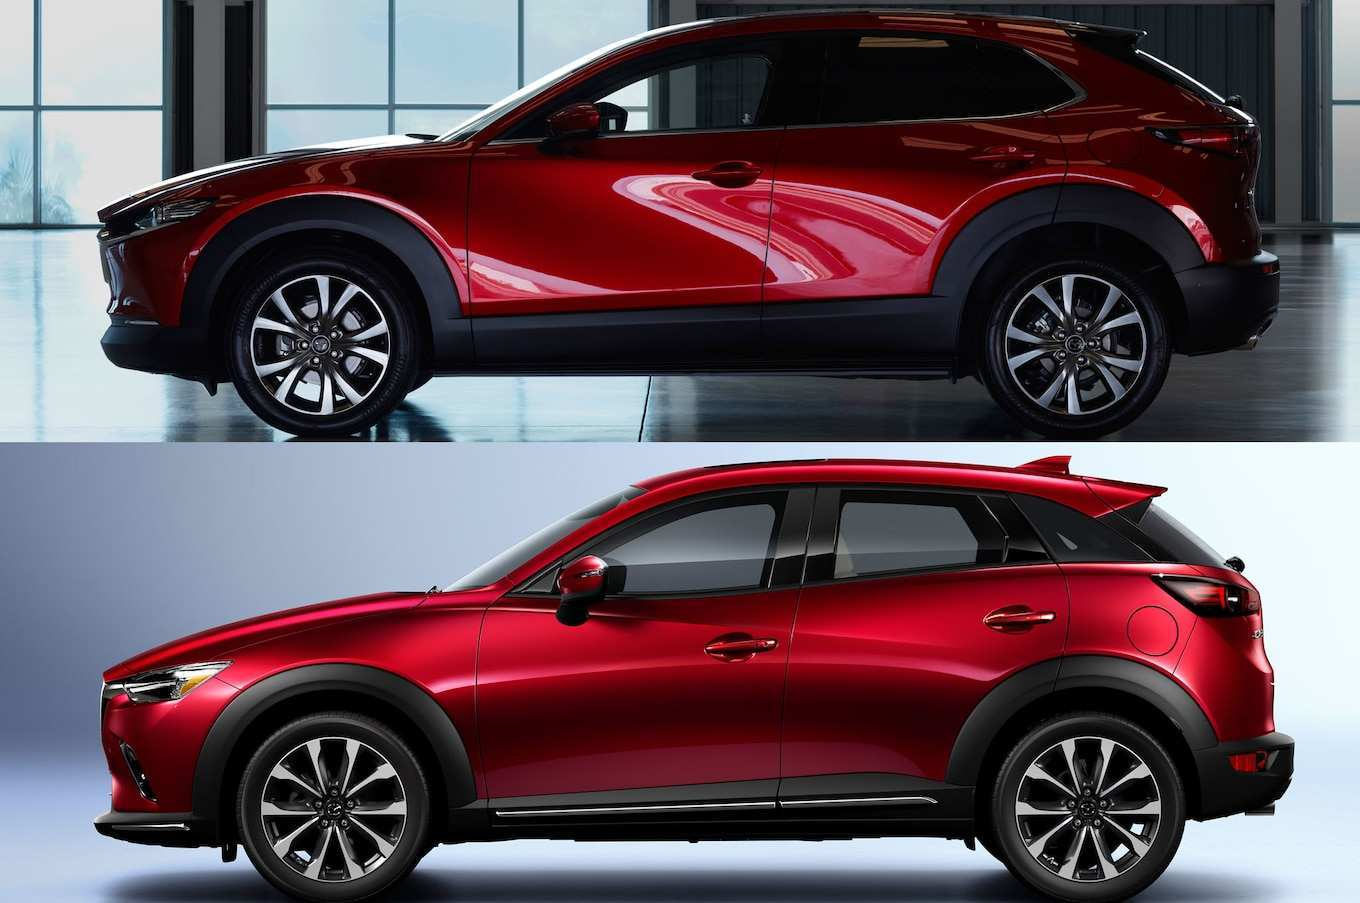 89 All New 2020 Mazda X30 Exterior by 2020 Mazda X30